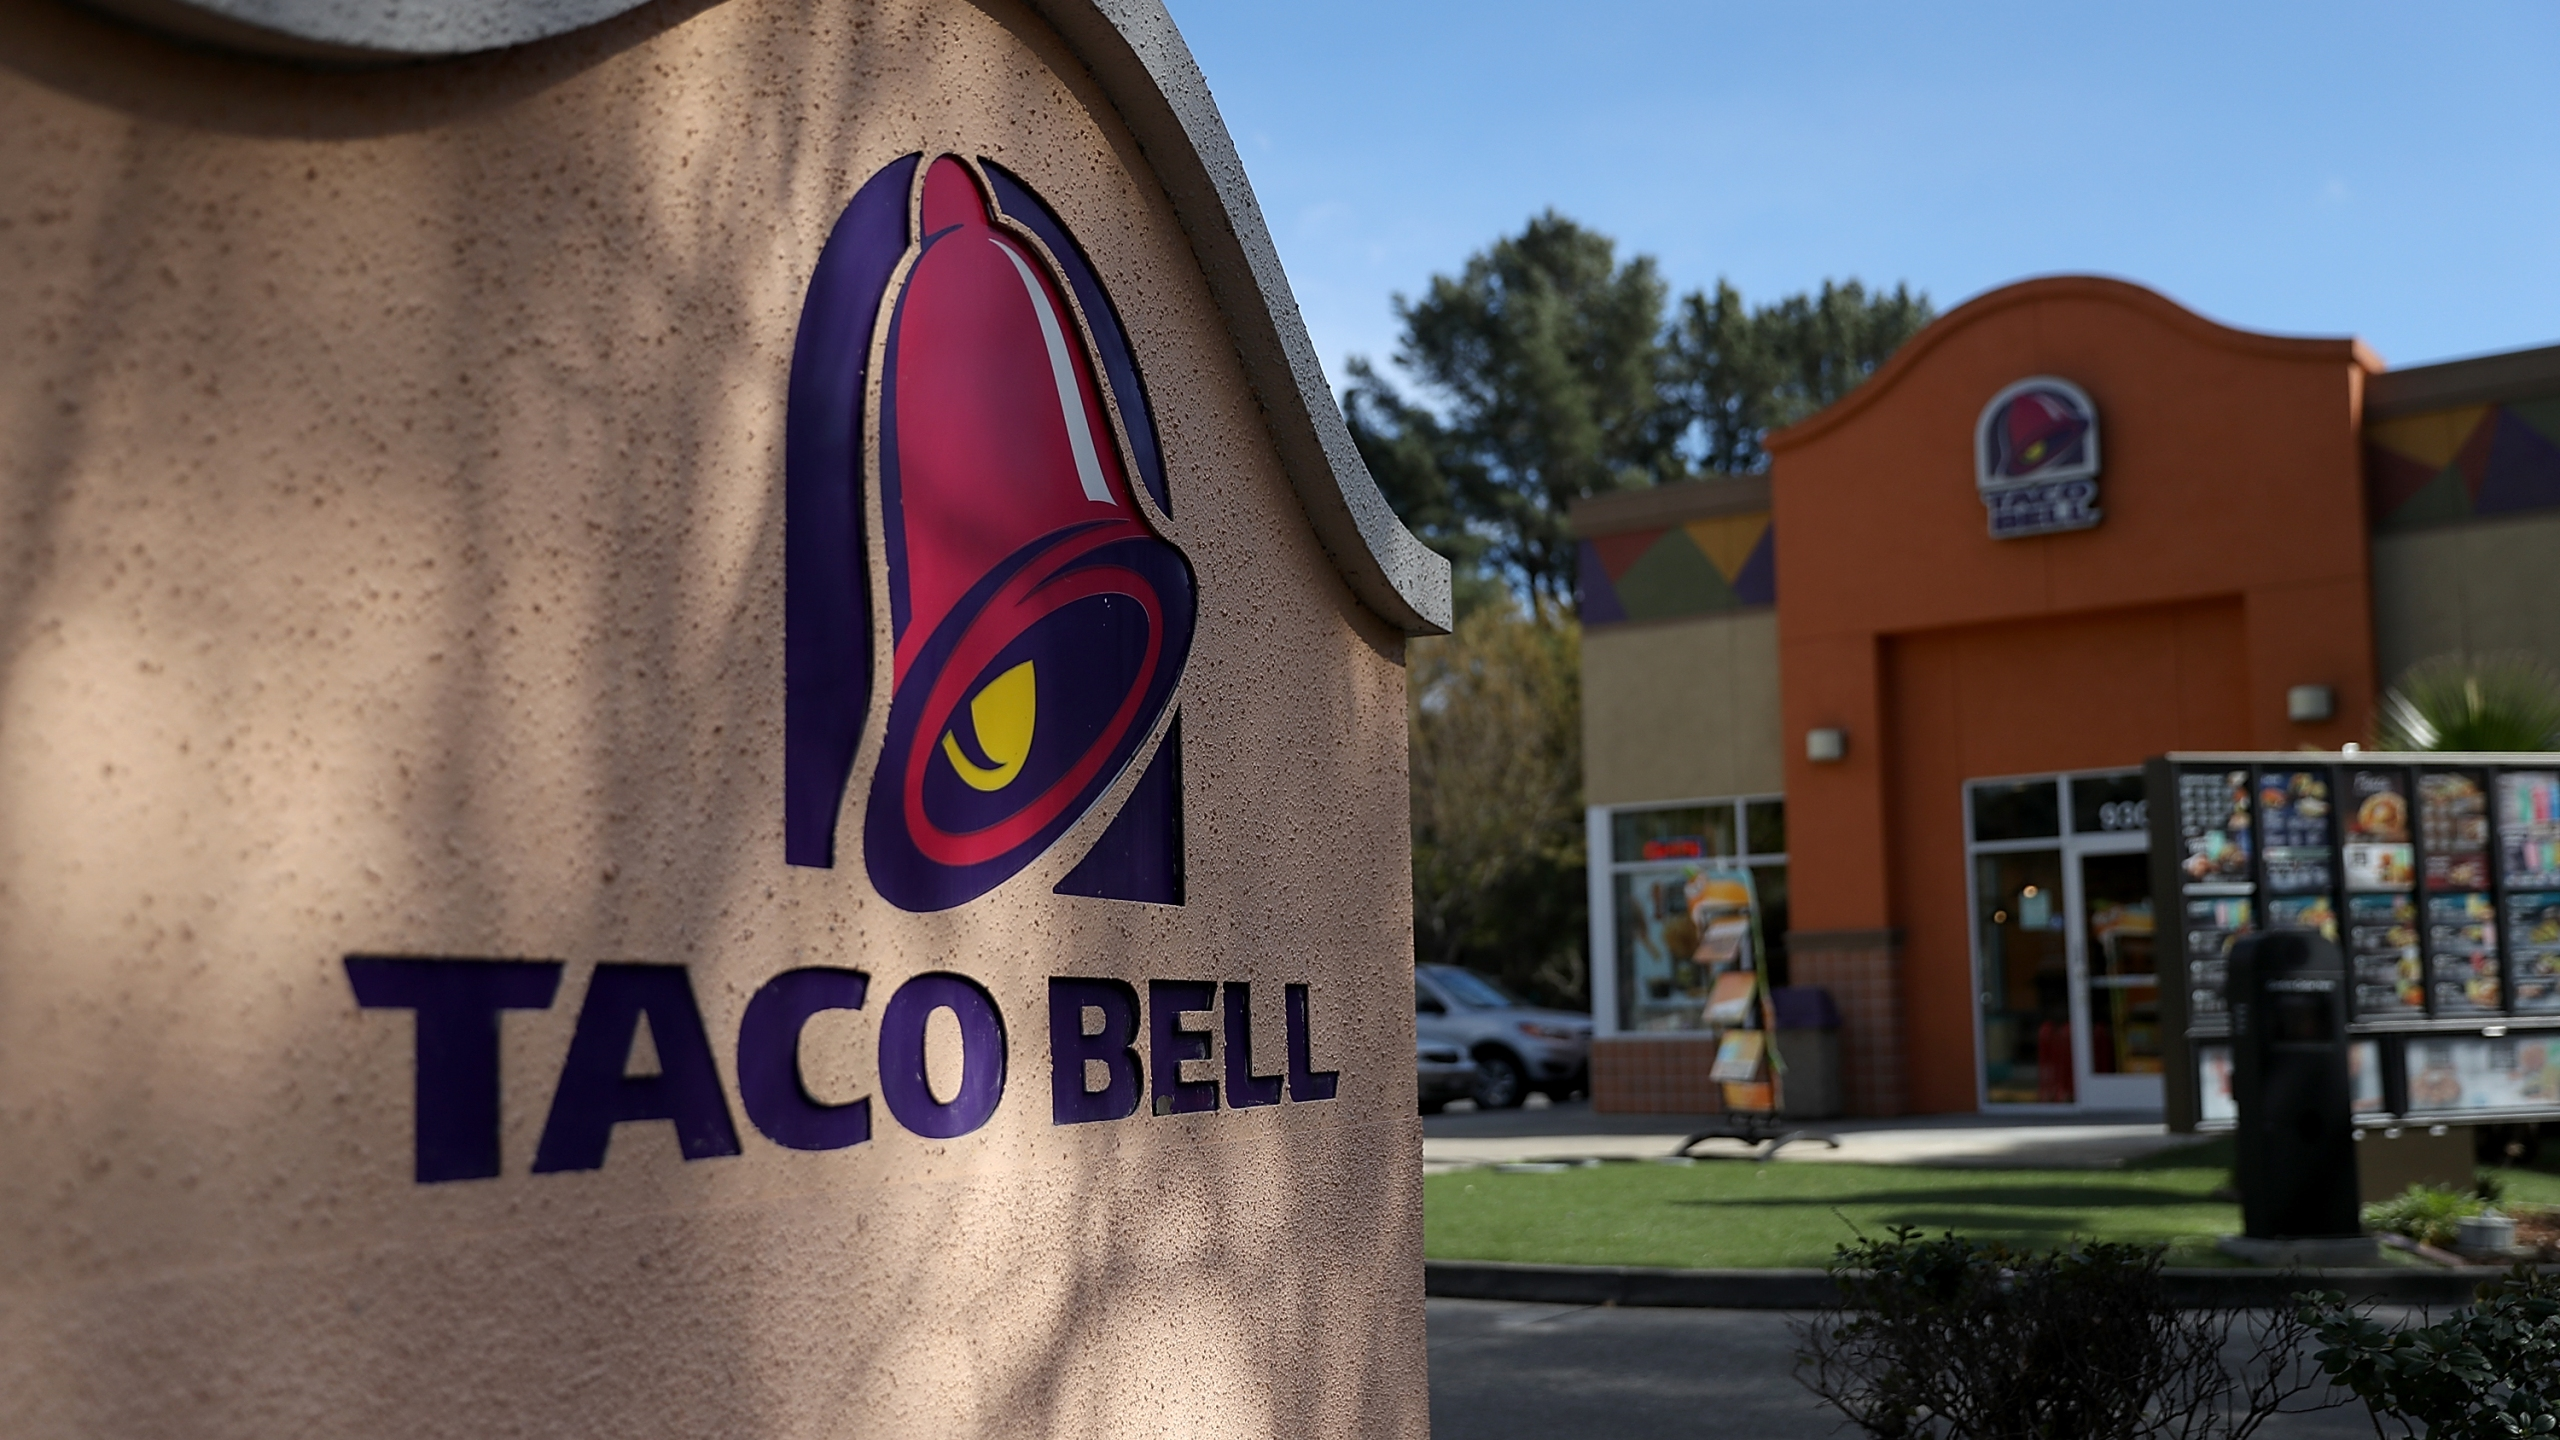 A sign is posted in front of a Taco Bell restaurant on February 22, 2018 in Novato, California. (Credit: Justin Sullivan/Getty Images)